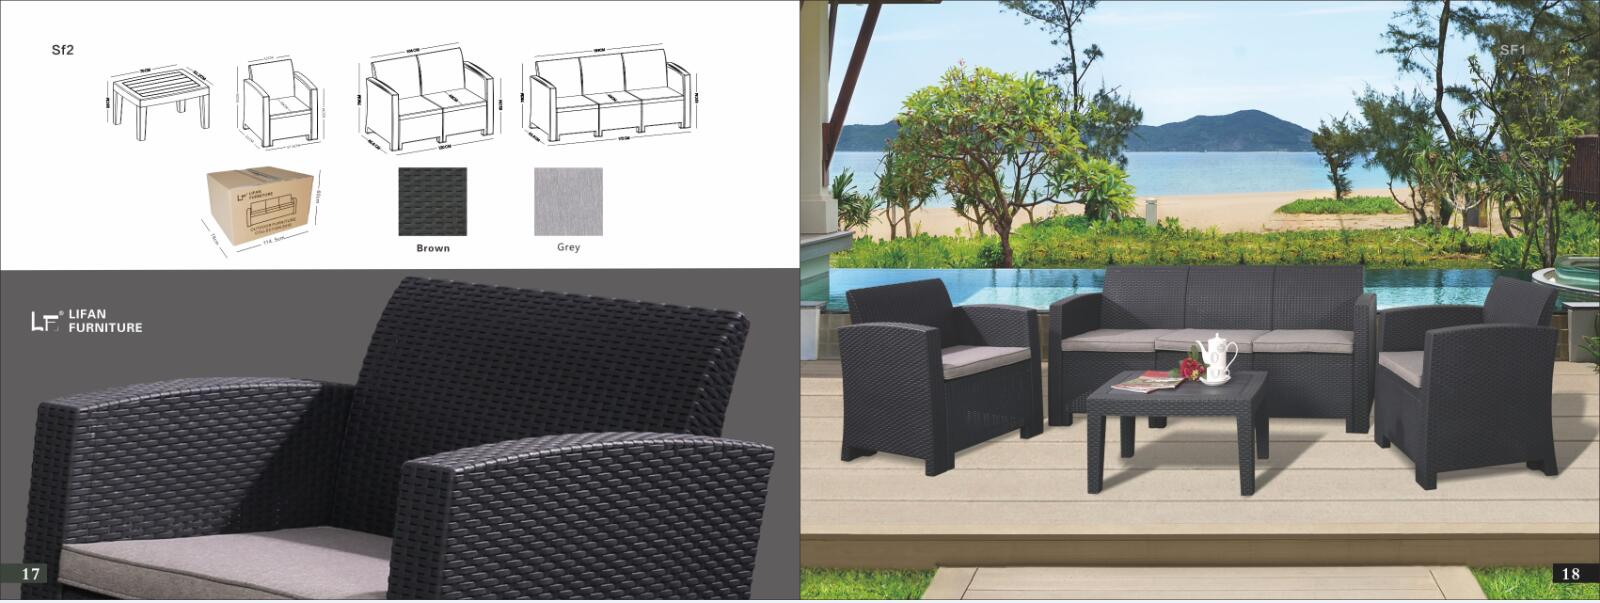 Garden Furniture Sofa Outdoor